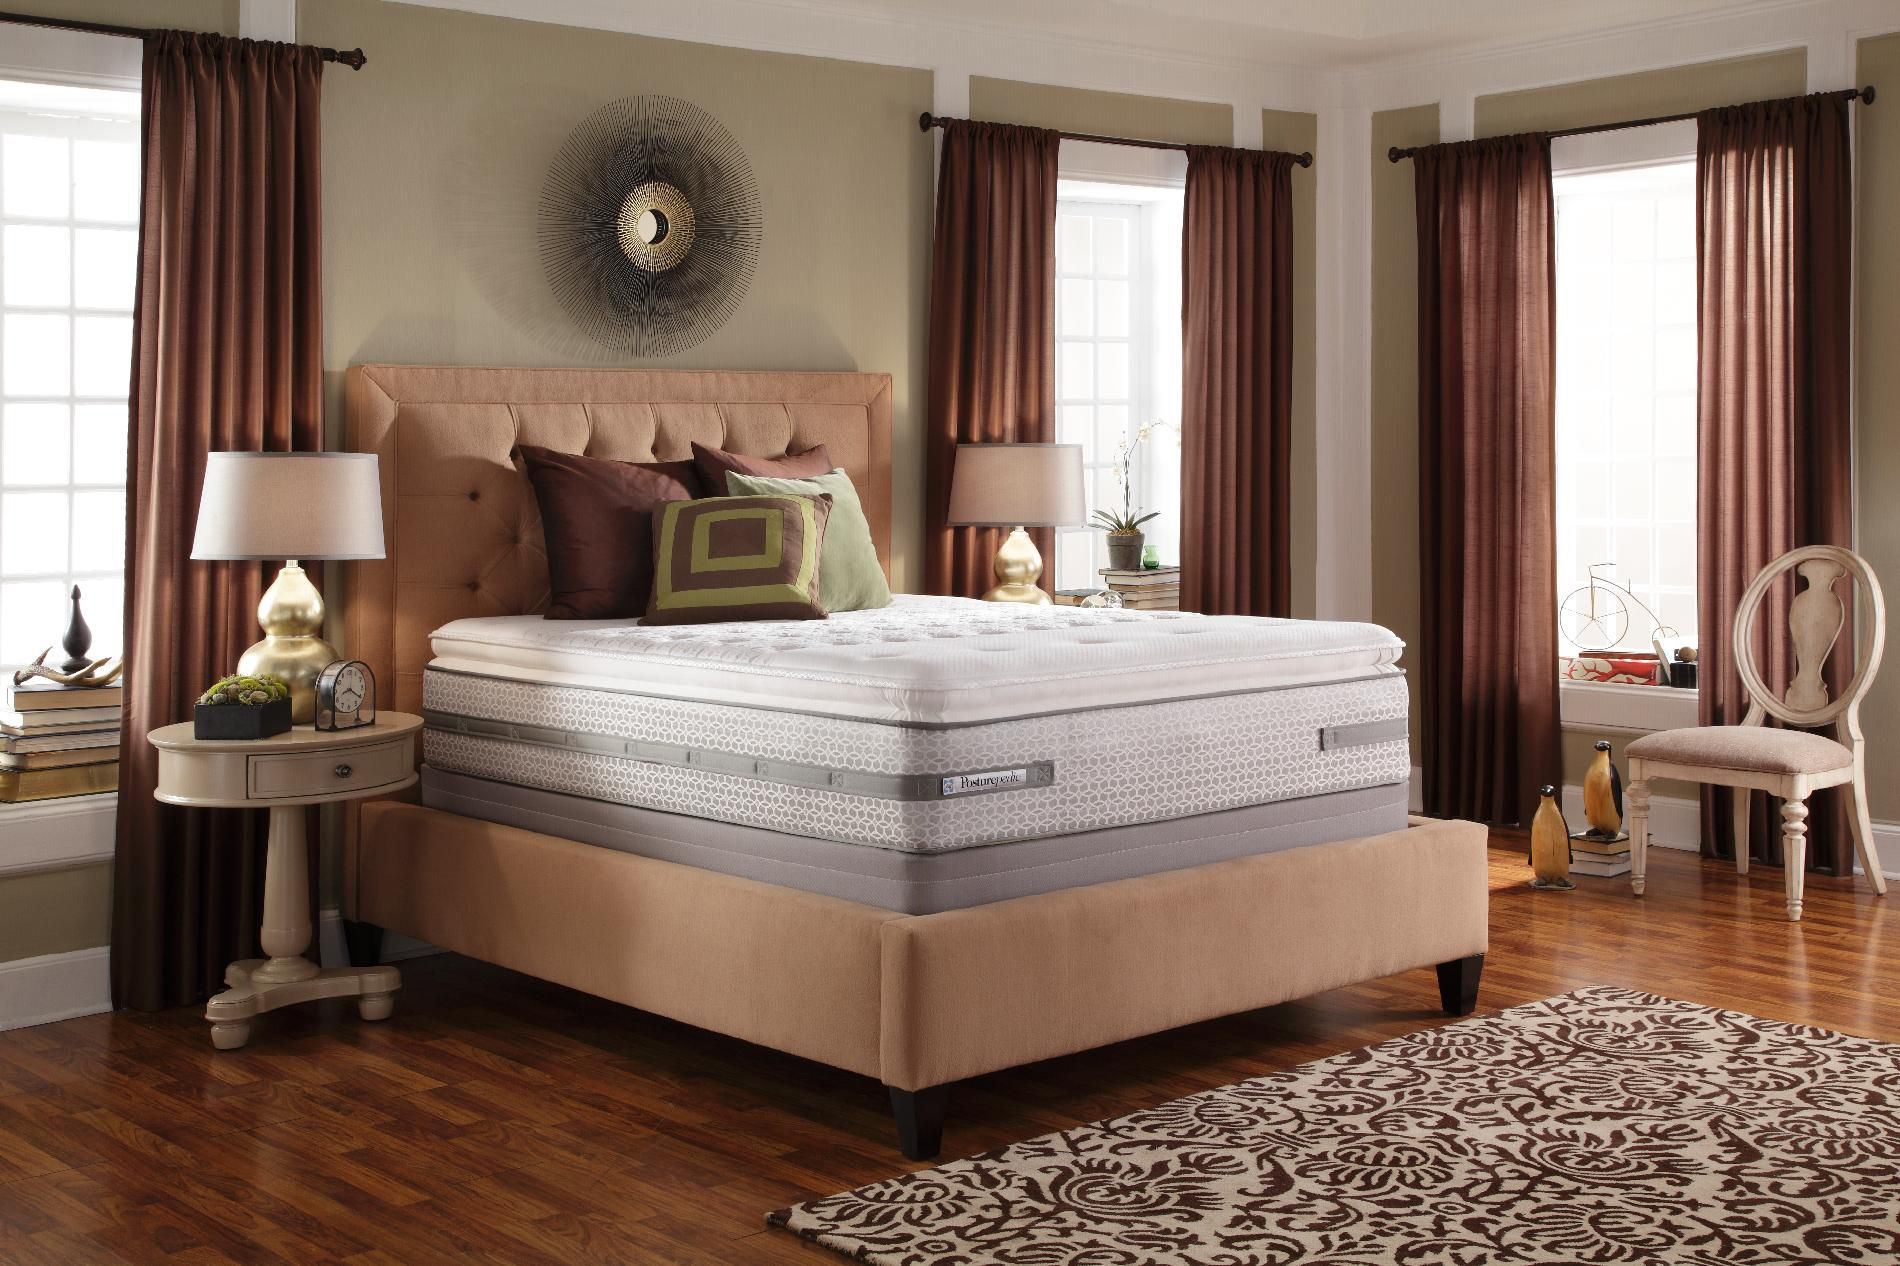 Sealy Posturepedic Gibson TI2  Plush Euro Pillowtop  Queen Mattress Only